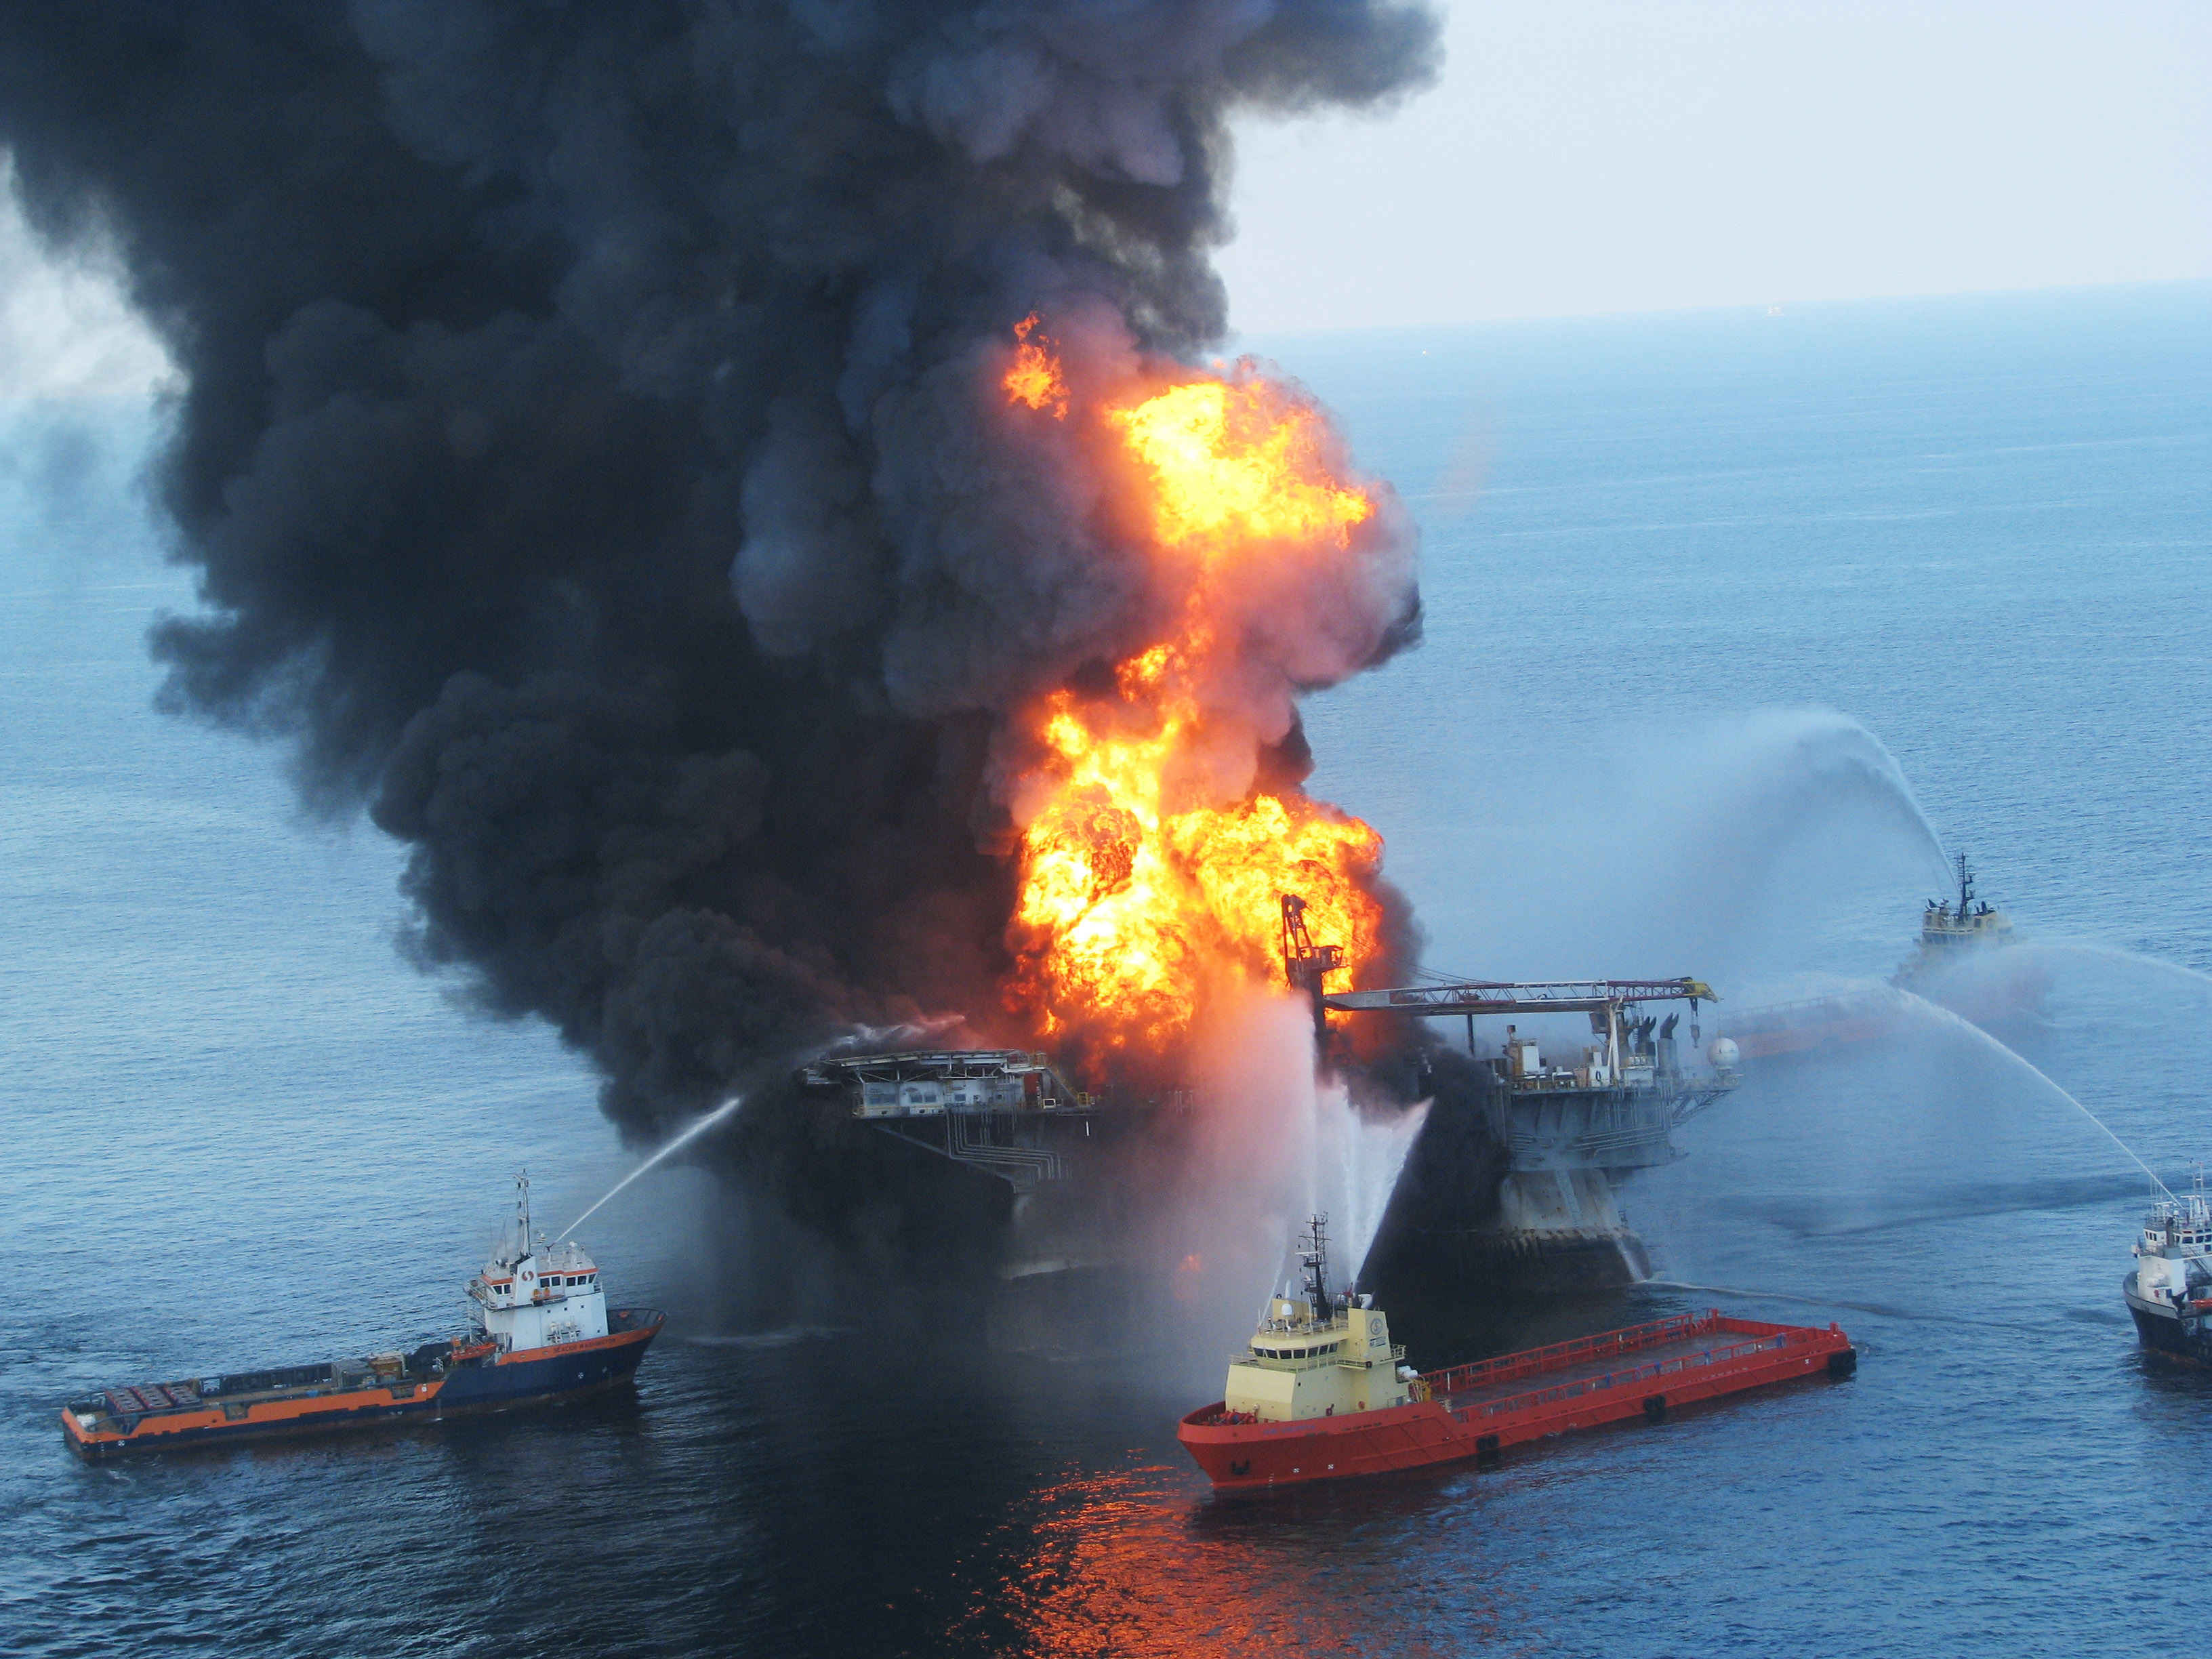 Fire boats battle a fire at the off shore oil rig Deepwater Horizon.